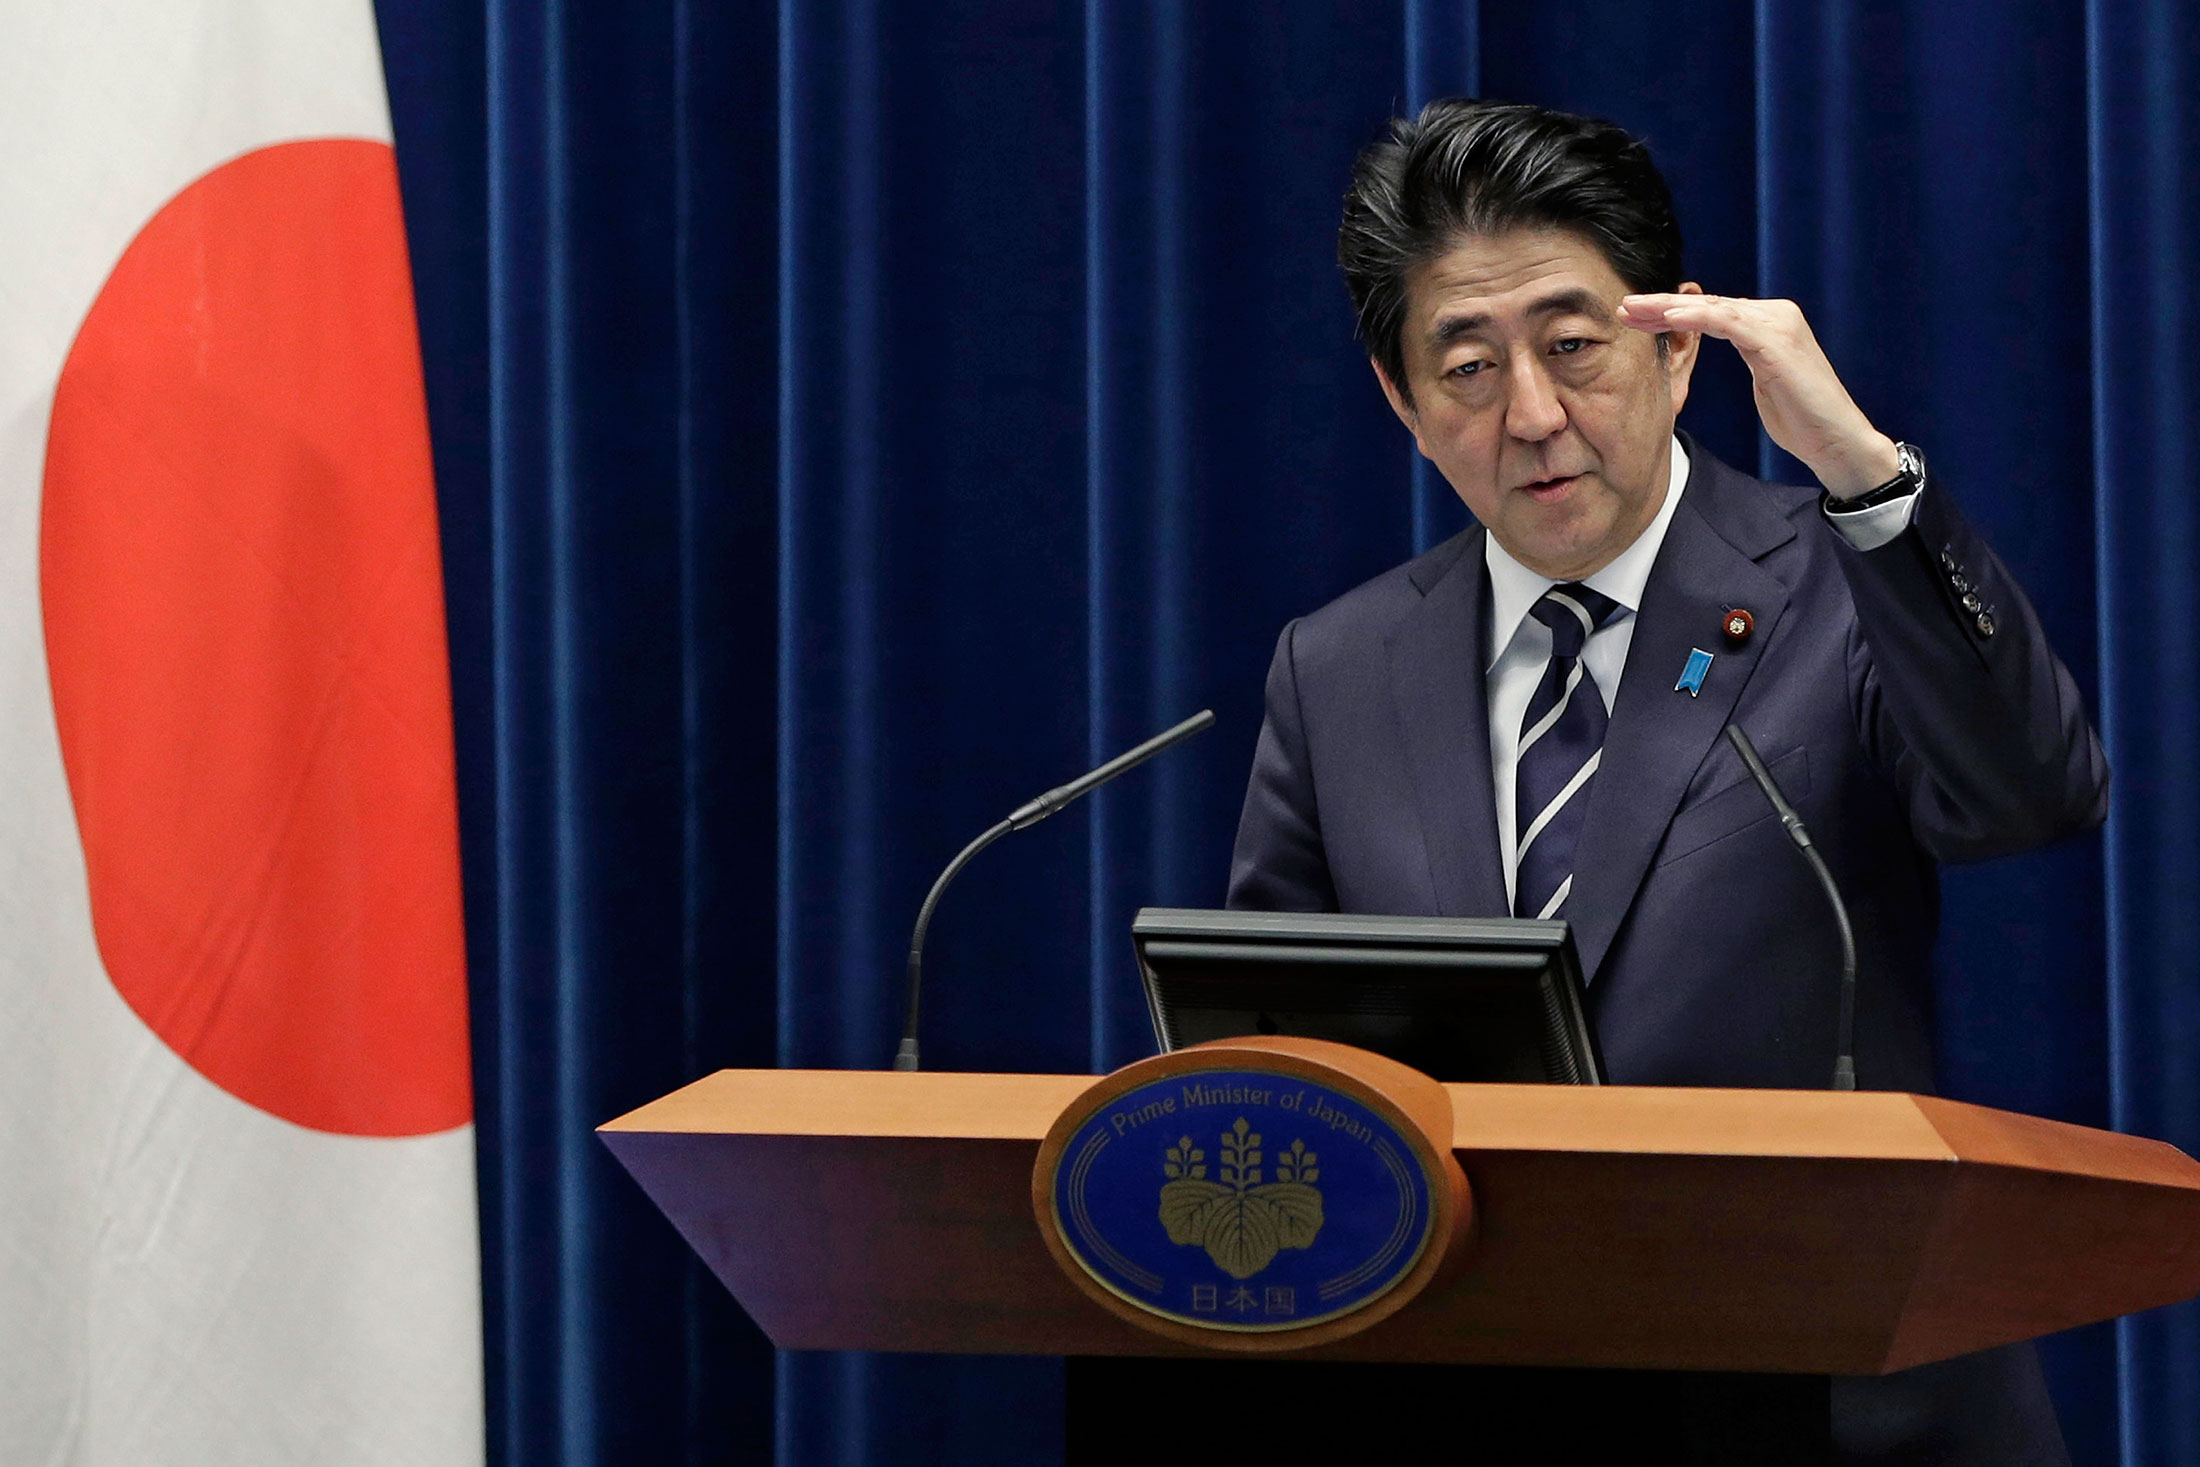 Abe Keeps Aces in Japan Cabinet While Playing a Couple of Jokers - Bloomberg